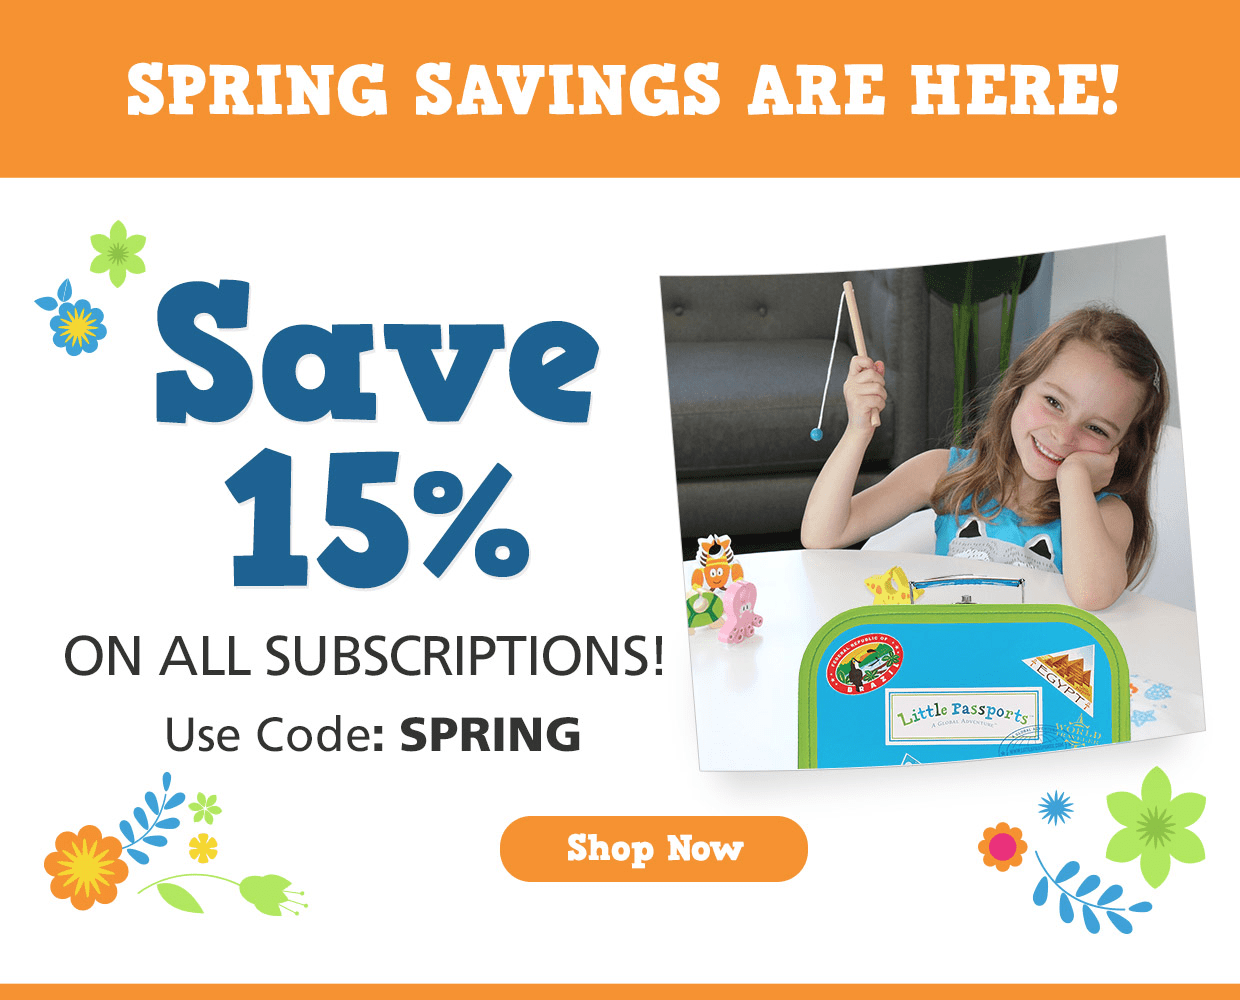 Last Day! Little Passports Coupon: Save 15% On All Subscriptions!